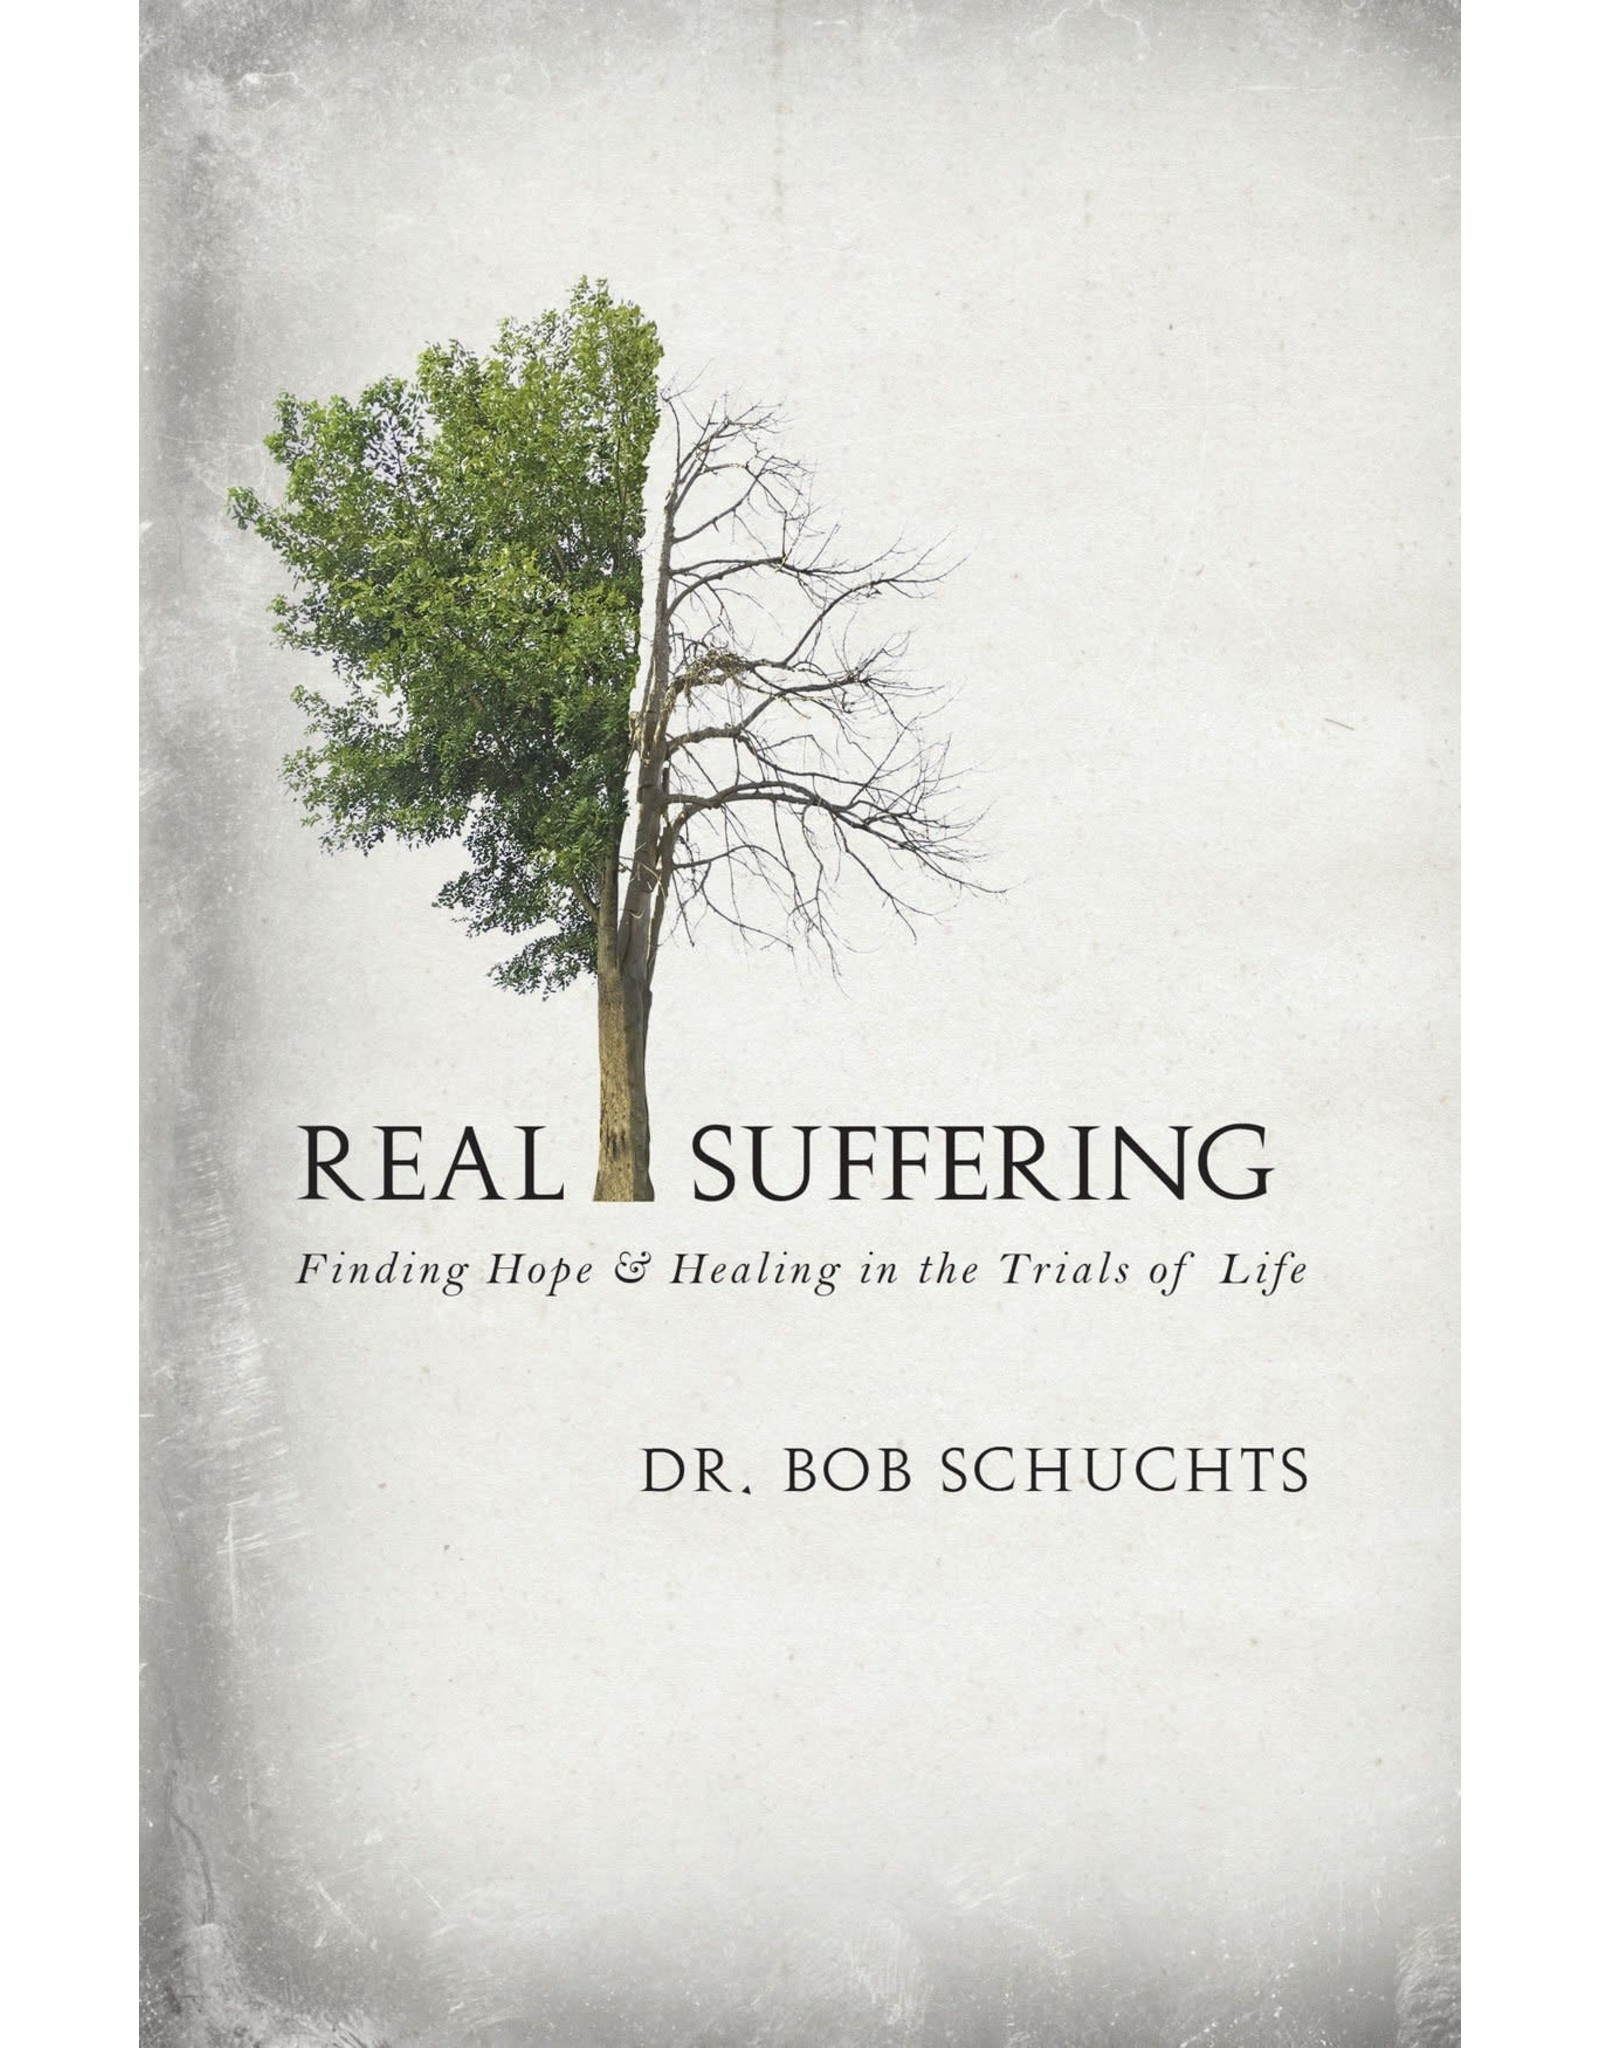 Schuchts, Bob Real Suffering: Finding Hope & Healing in the Trials of Life